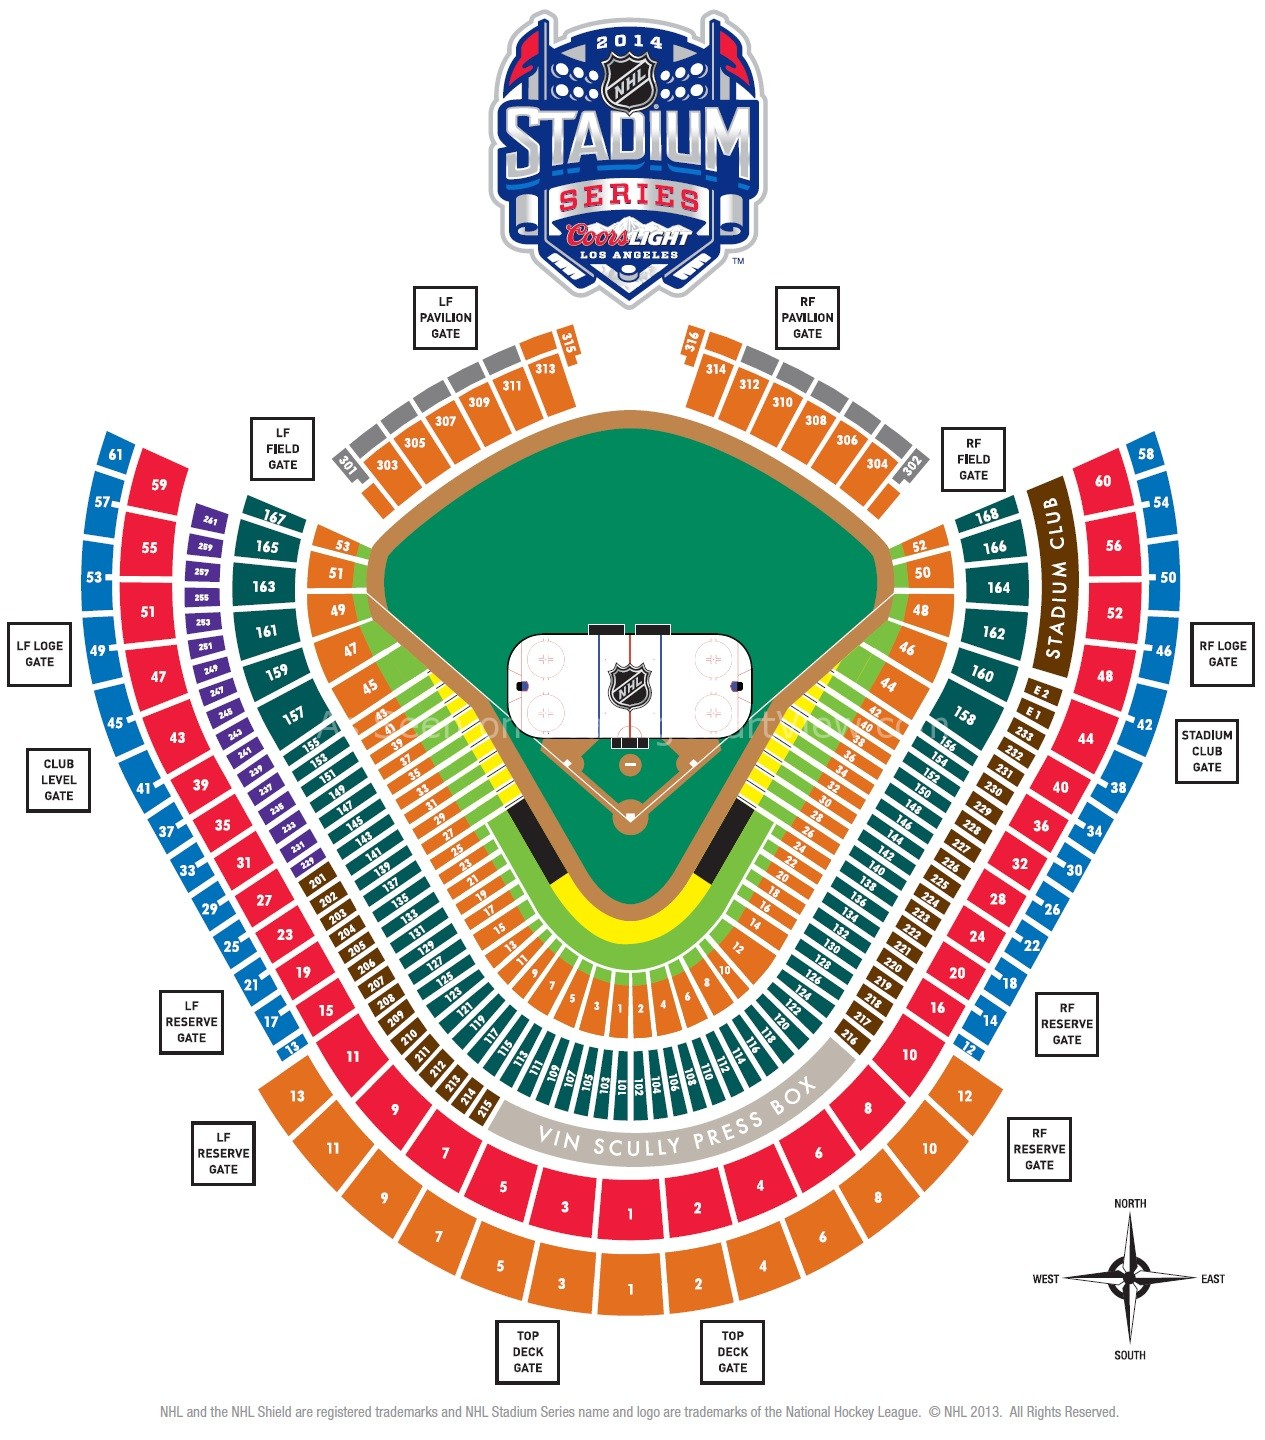 Yankee Stadium Seating Chart Concert Dodger stadium hockey seatingYankee Stadium Seating Chart Concert